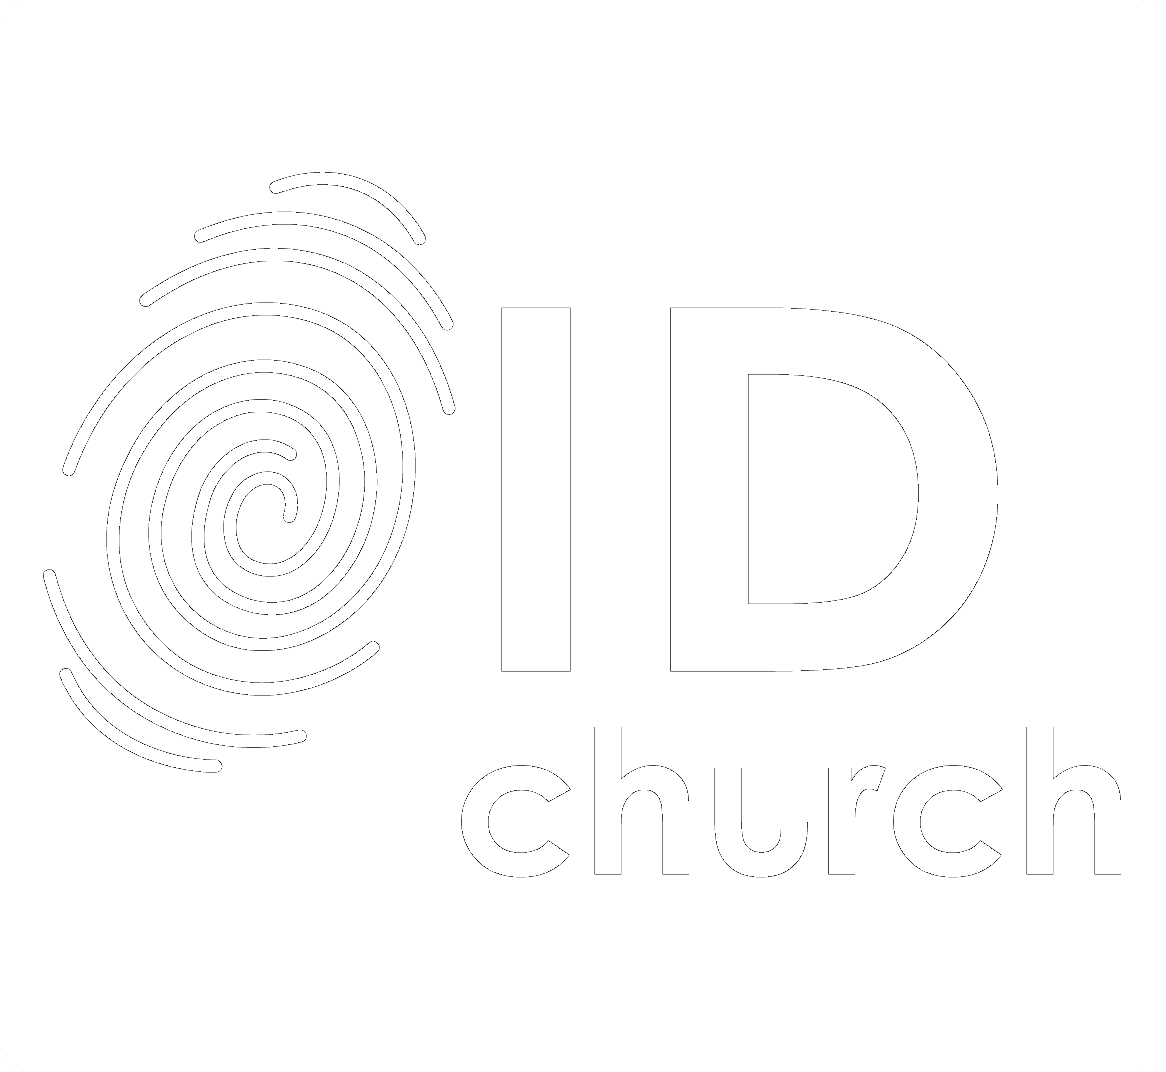 ID church